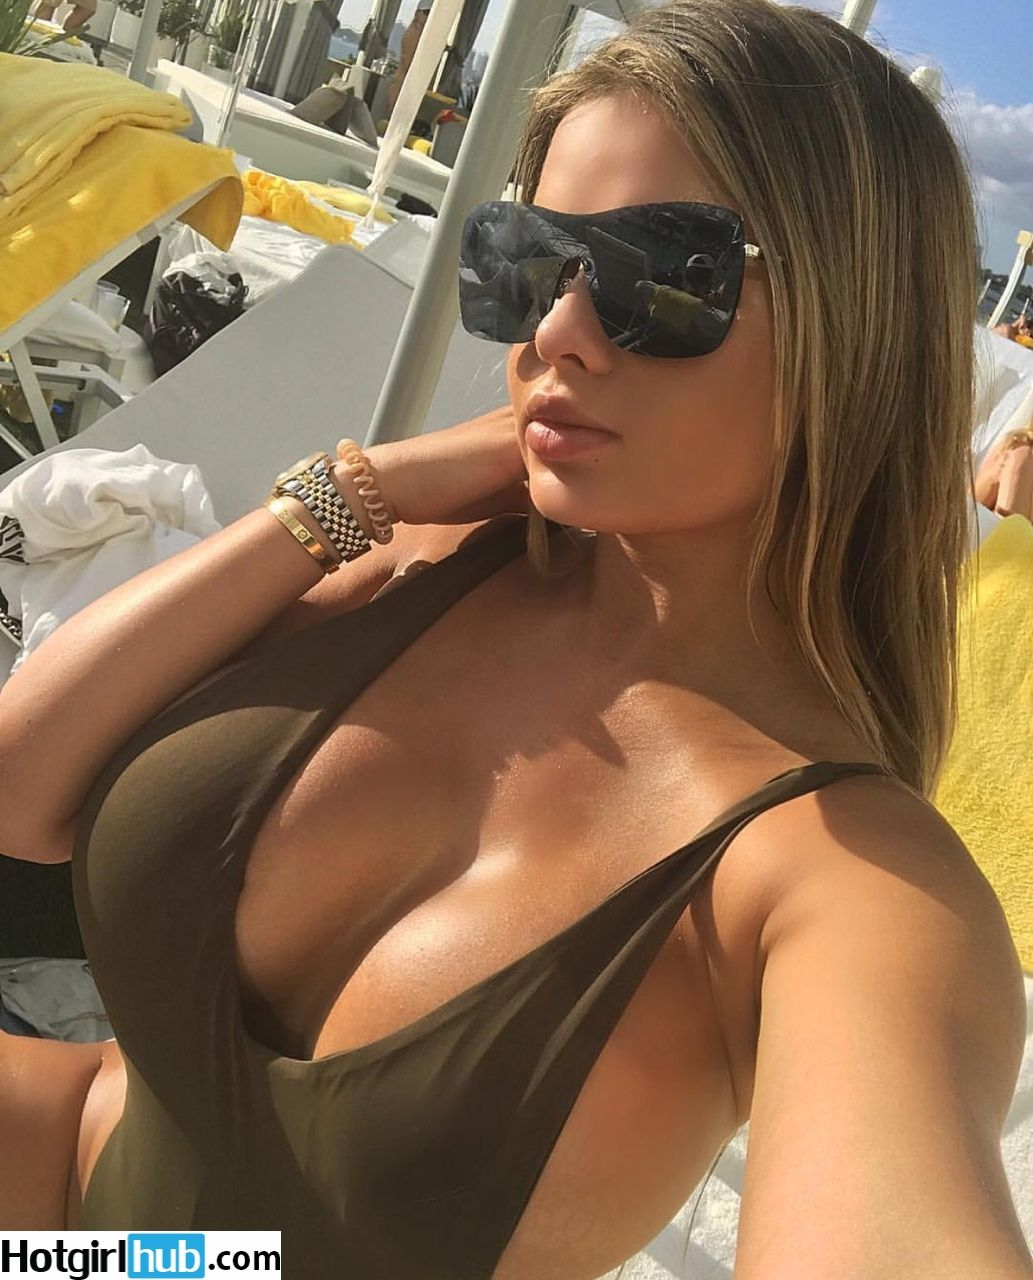 hot girl with glasses boobs